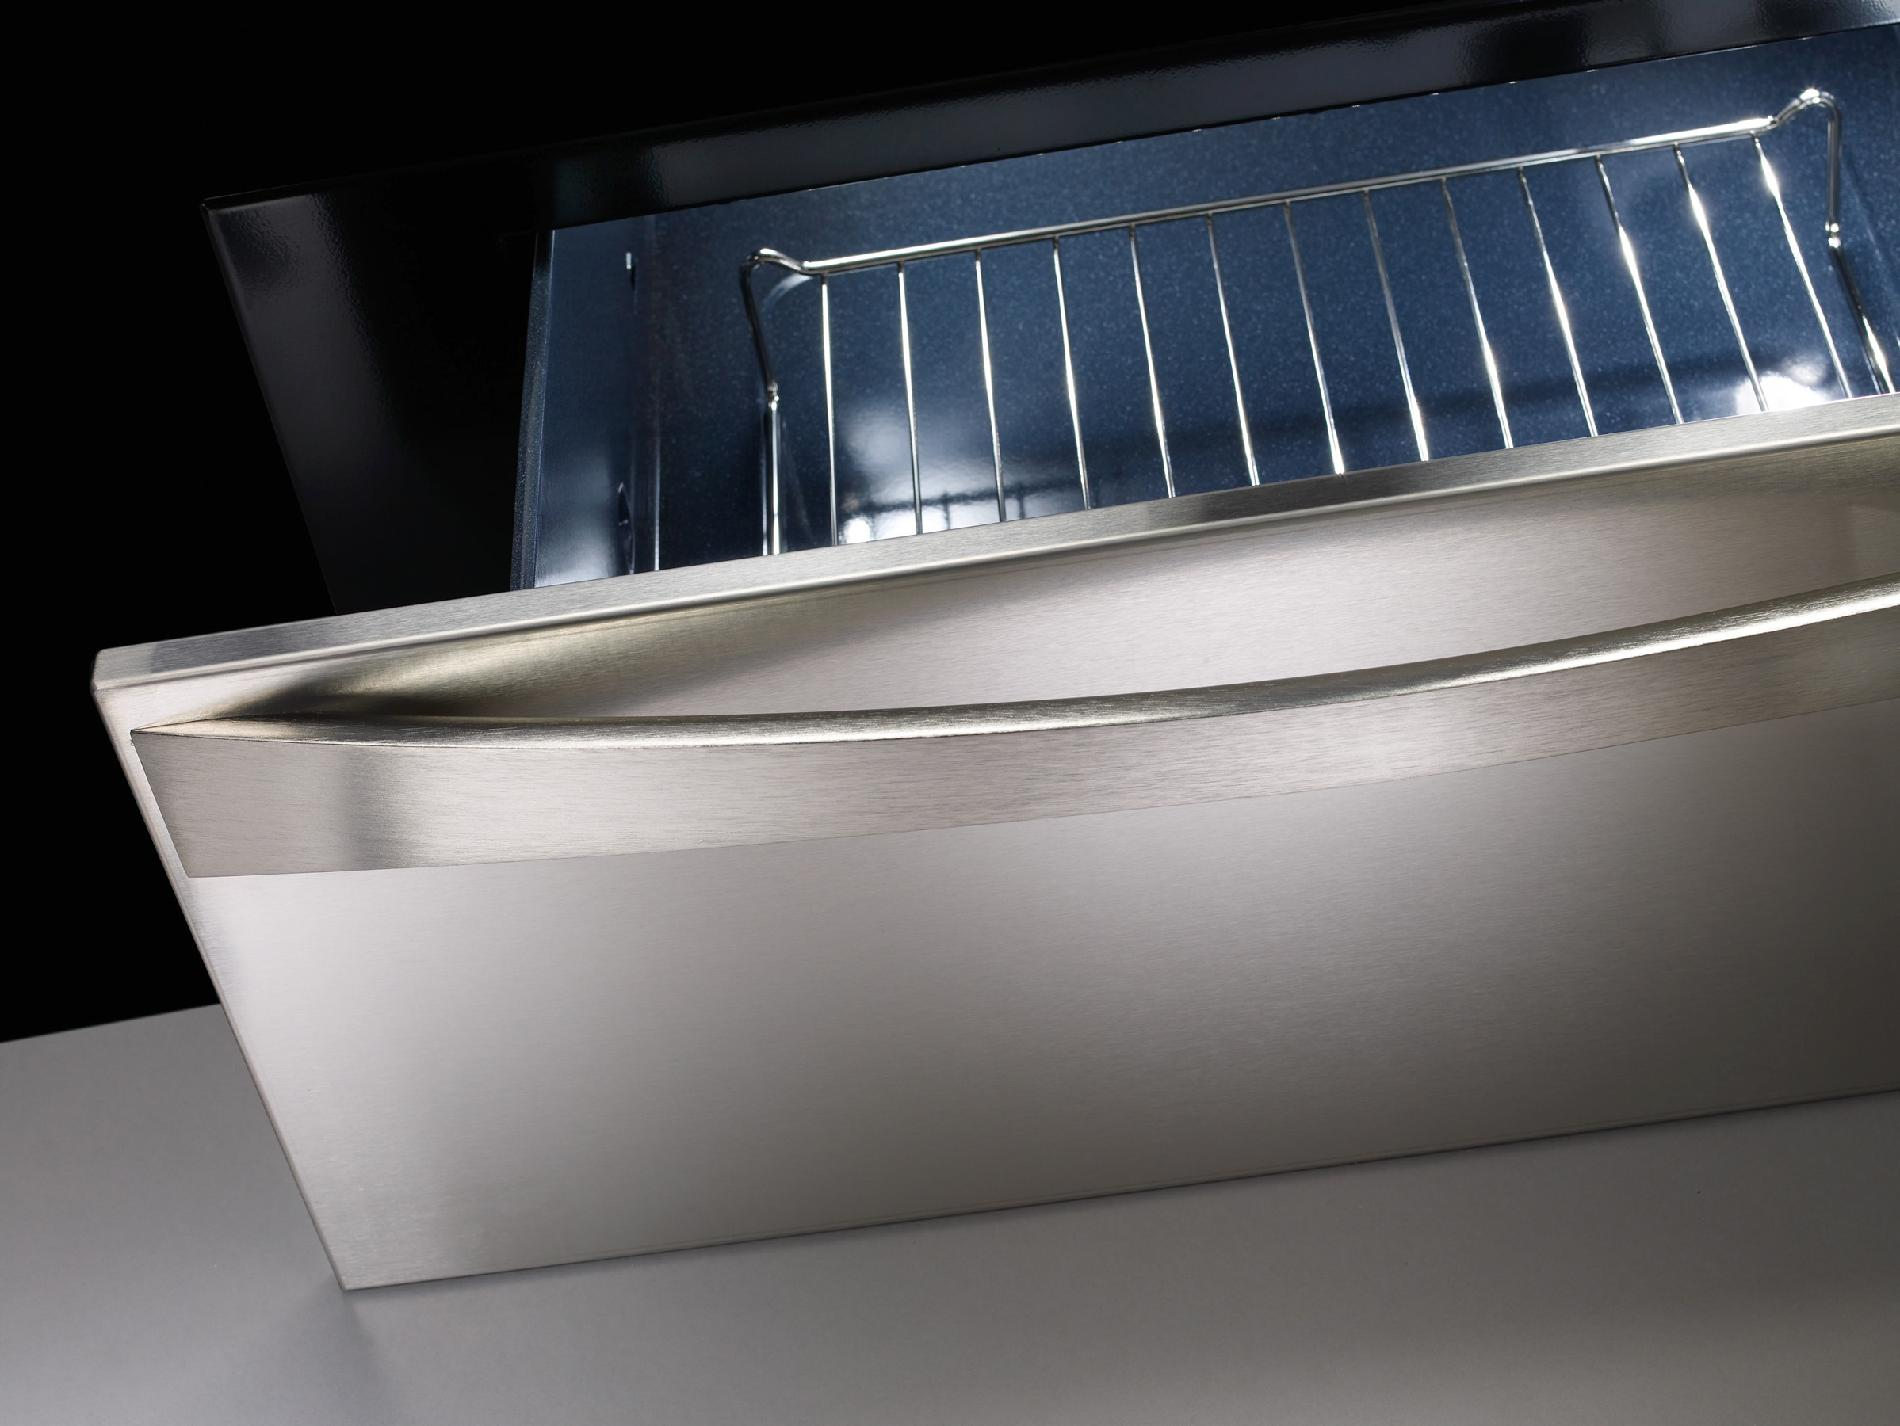 "Kenmore Elite 30"" Warming Drawer - Stainless Steel"